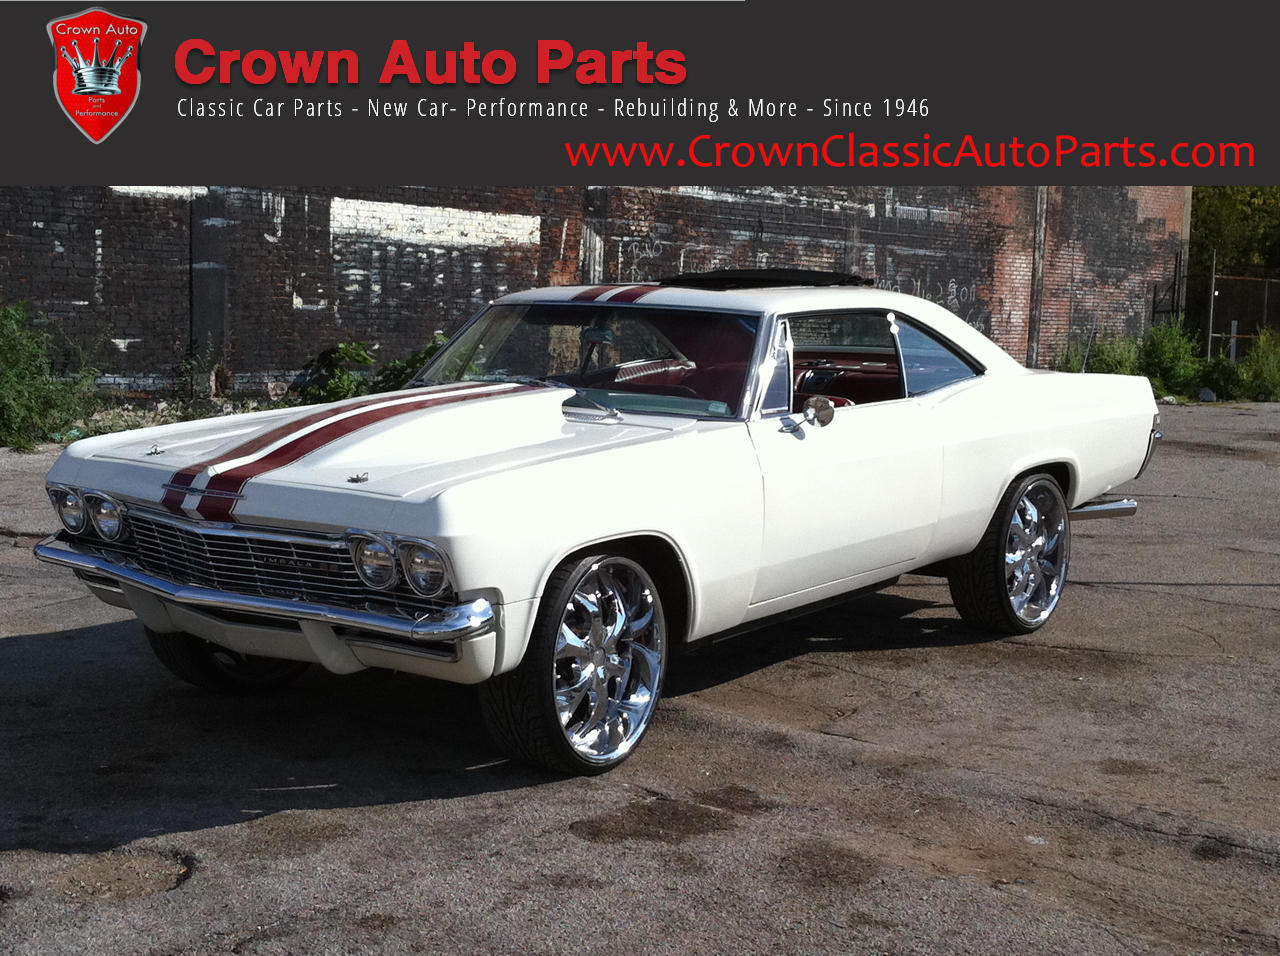 Crown Auto Parts & Rebuilding image 18